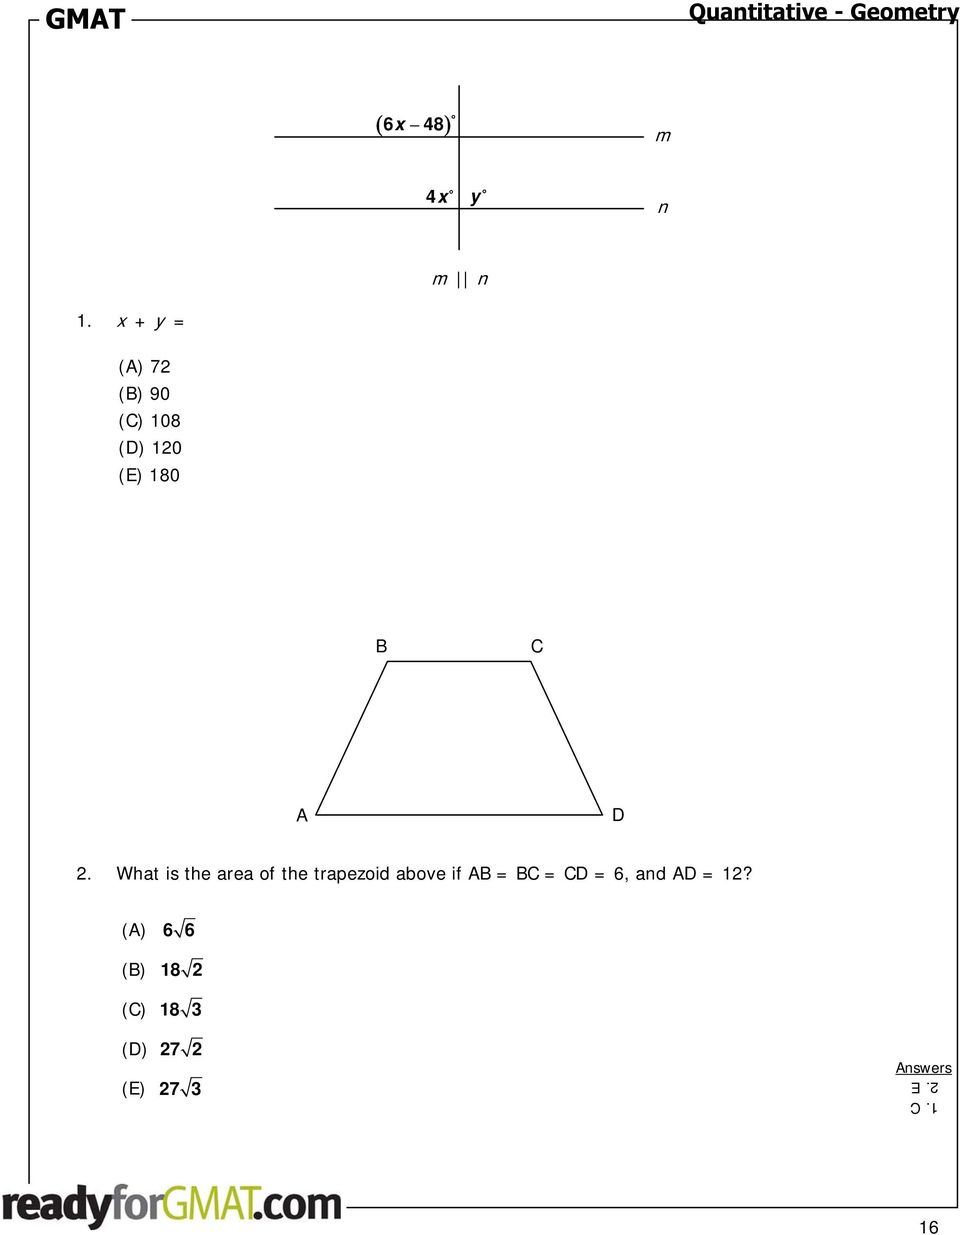 What is the area of the trapezoid above if AB